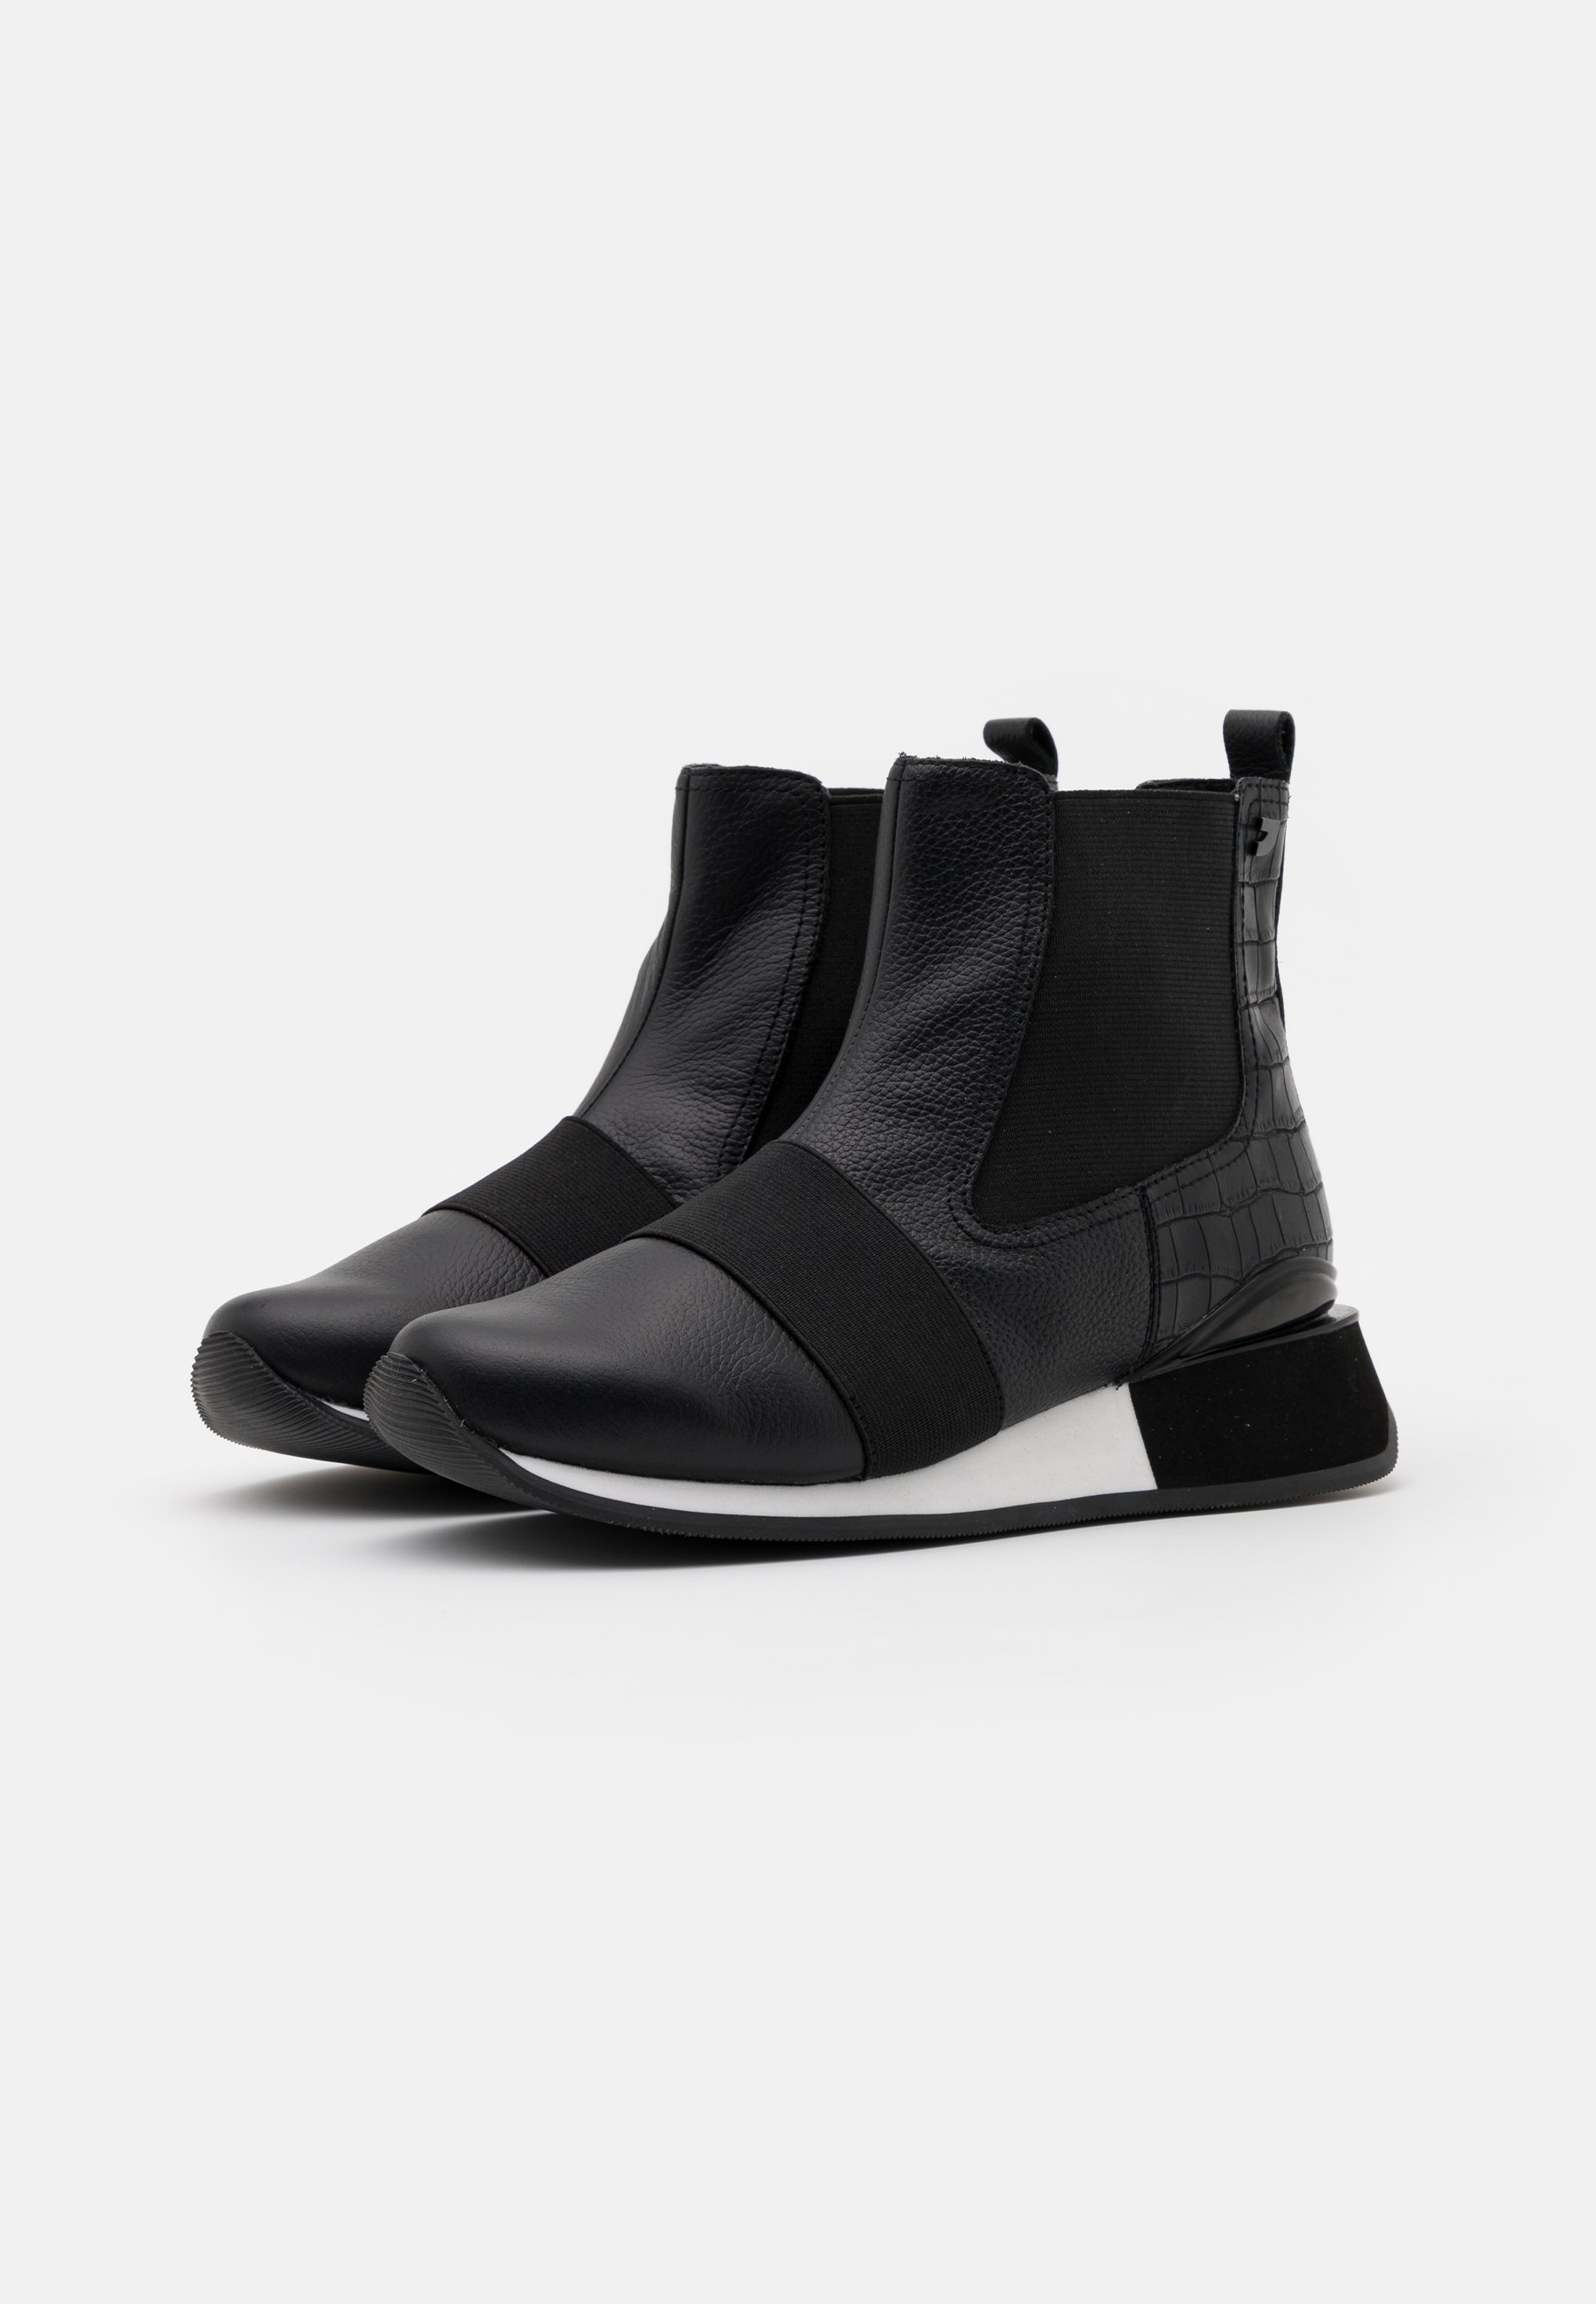 New Cheapest Gioseppo EGGESIN - Ankle boots - black | women's shoes 2020 vqu8r